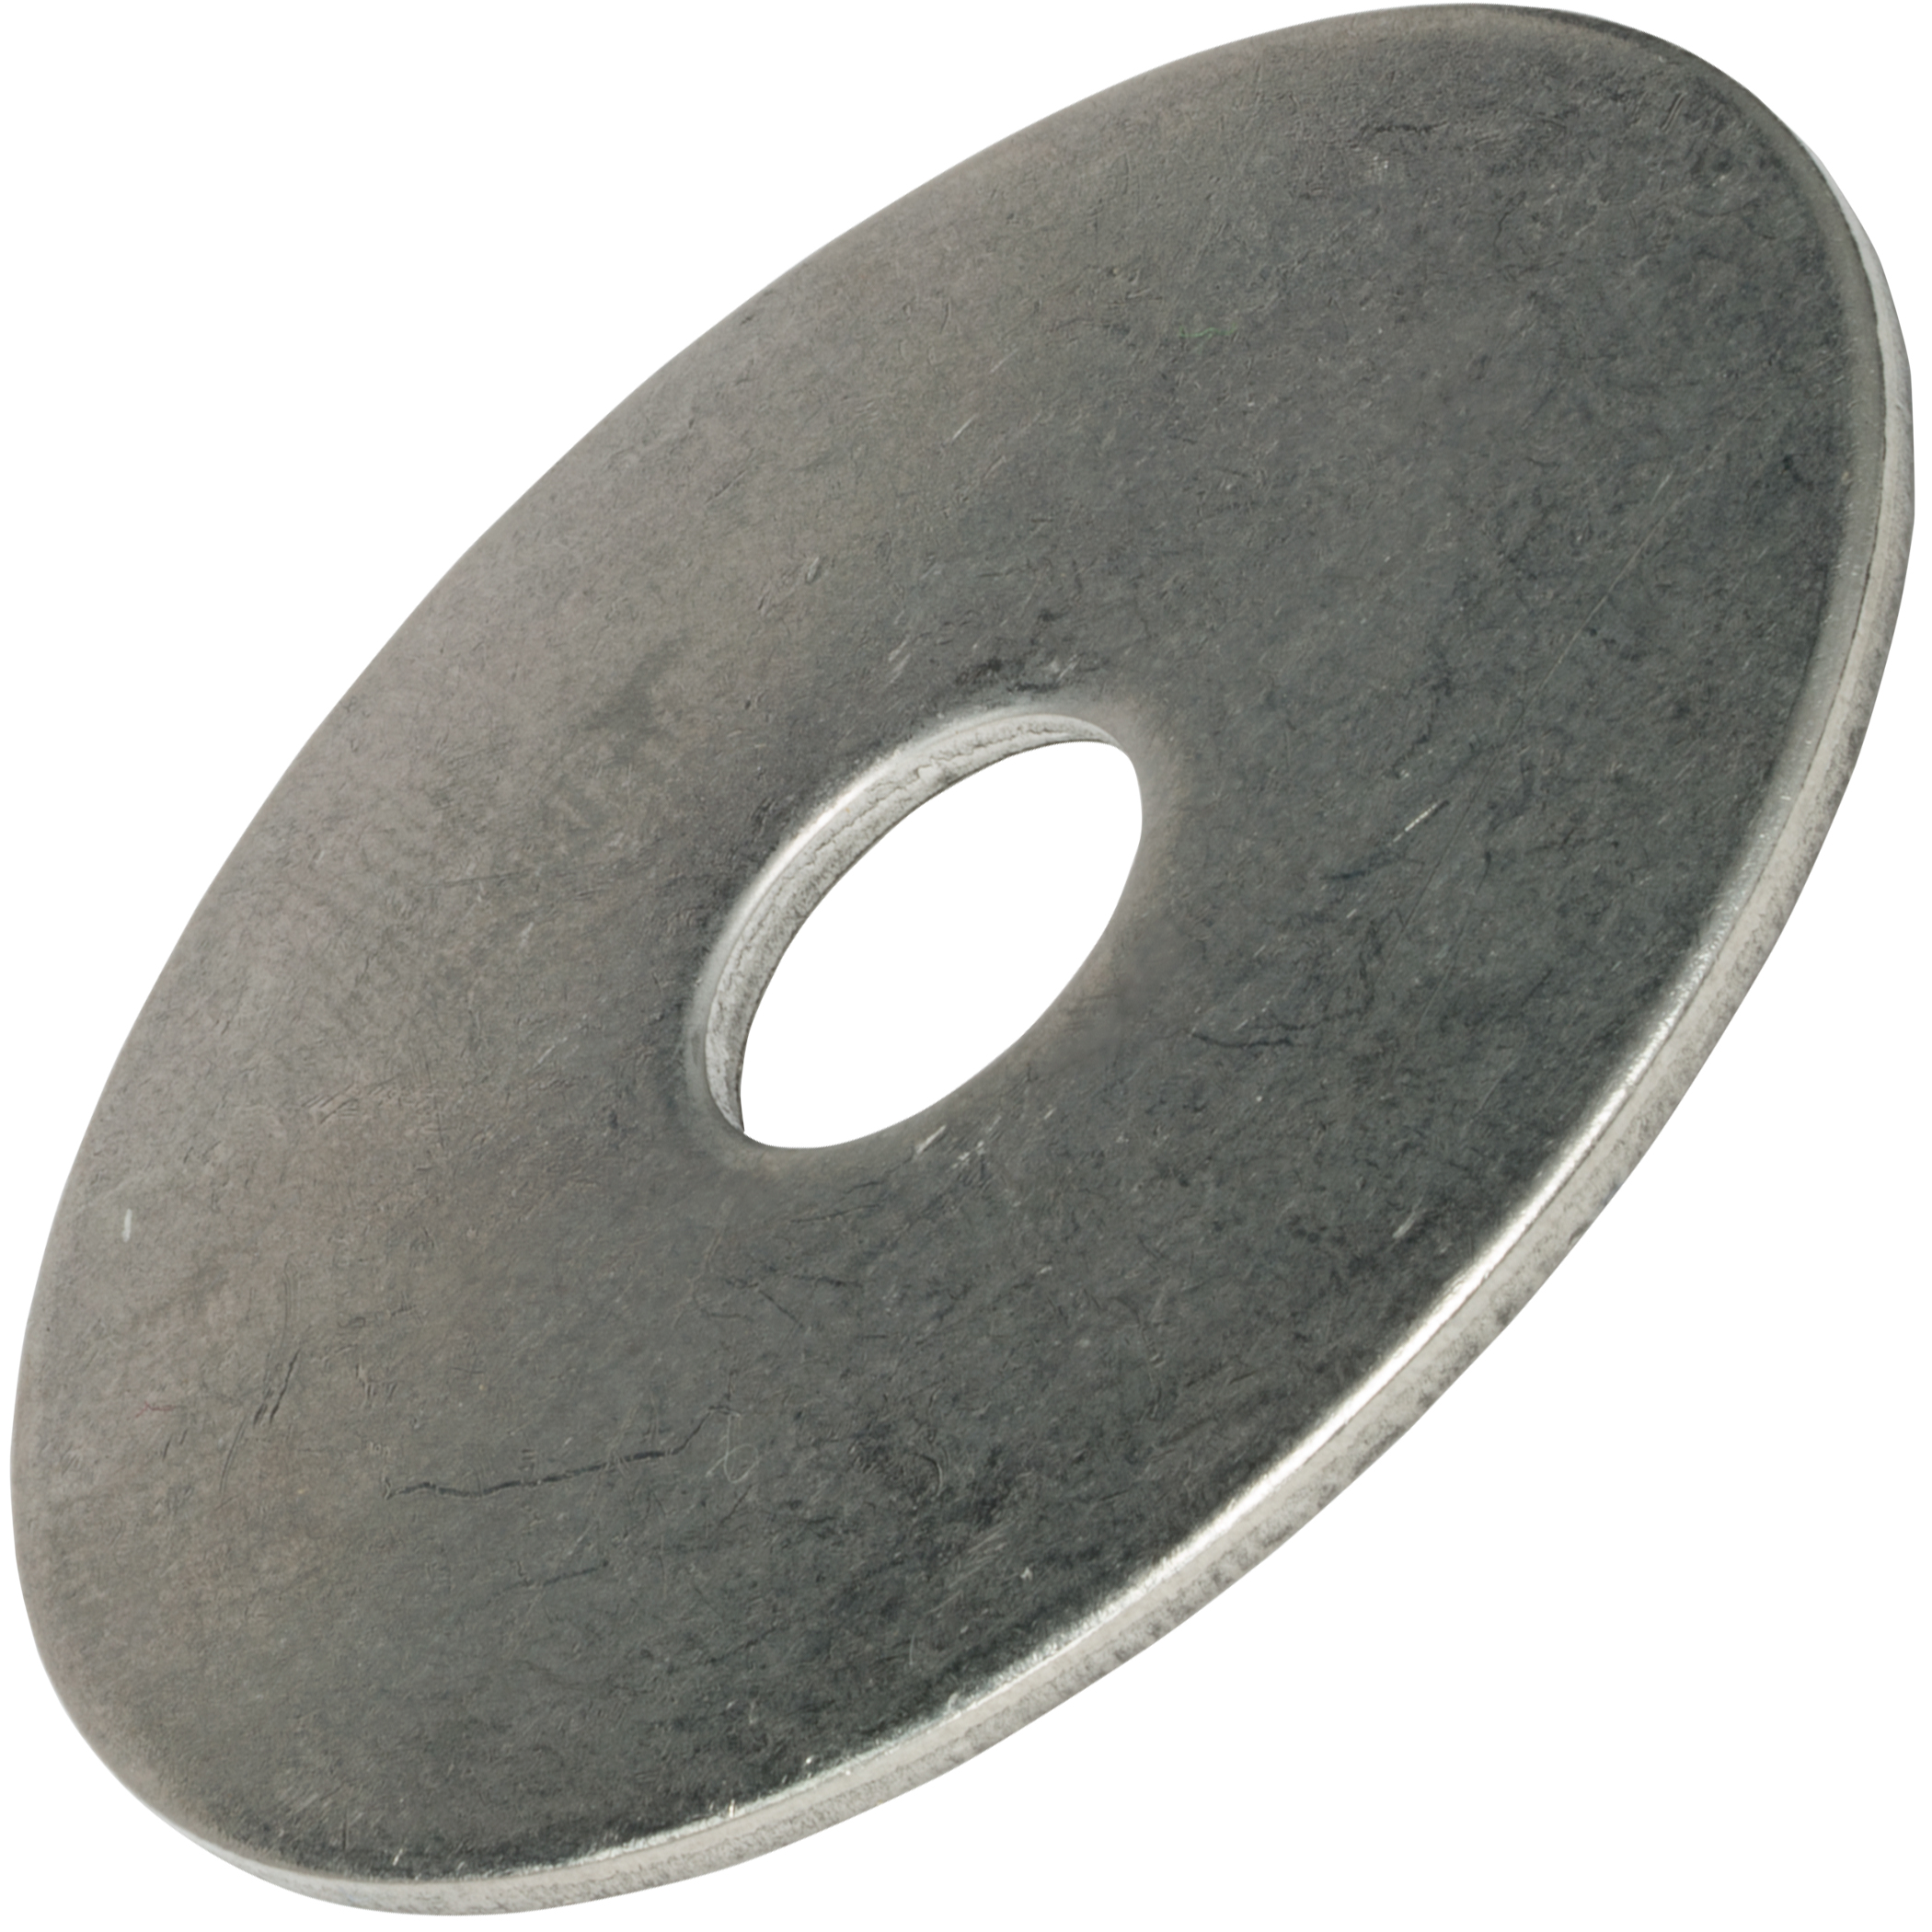 thumbnail 10 - Fender Washers Large Diameter Stainless Steel All Sizes Available in Listing